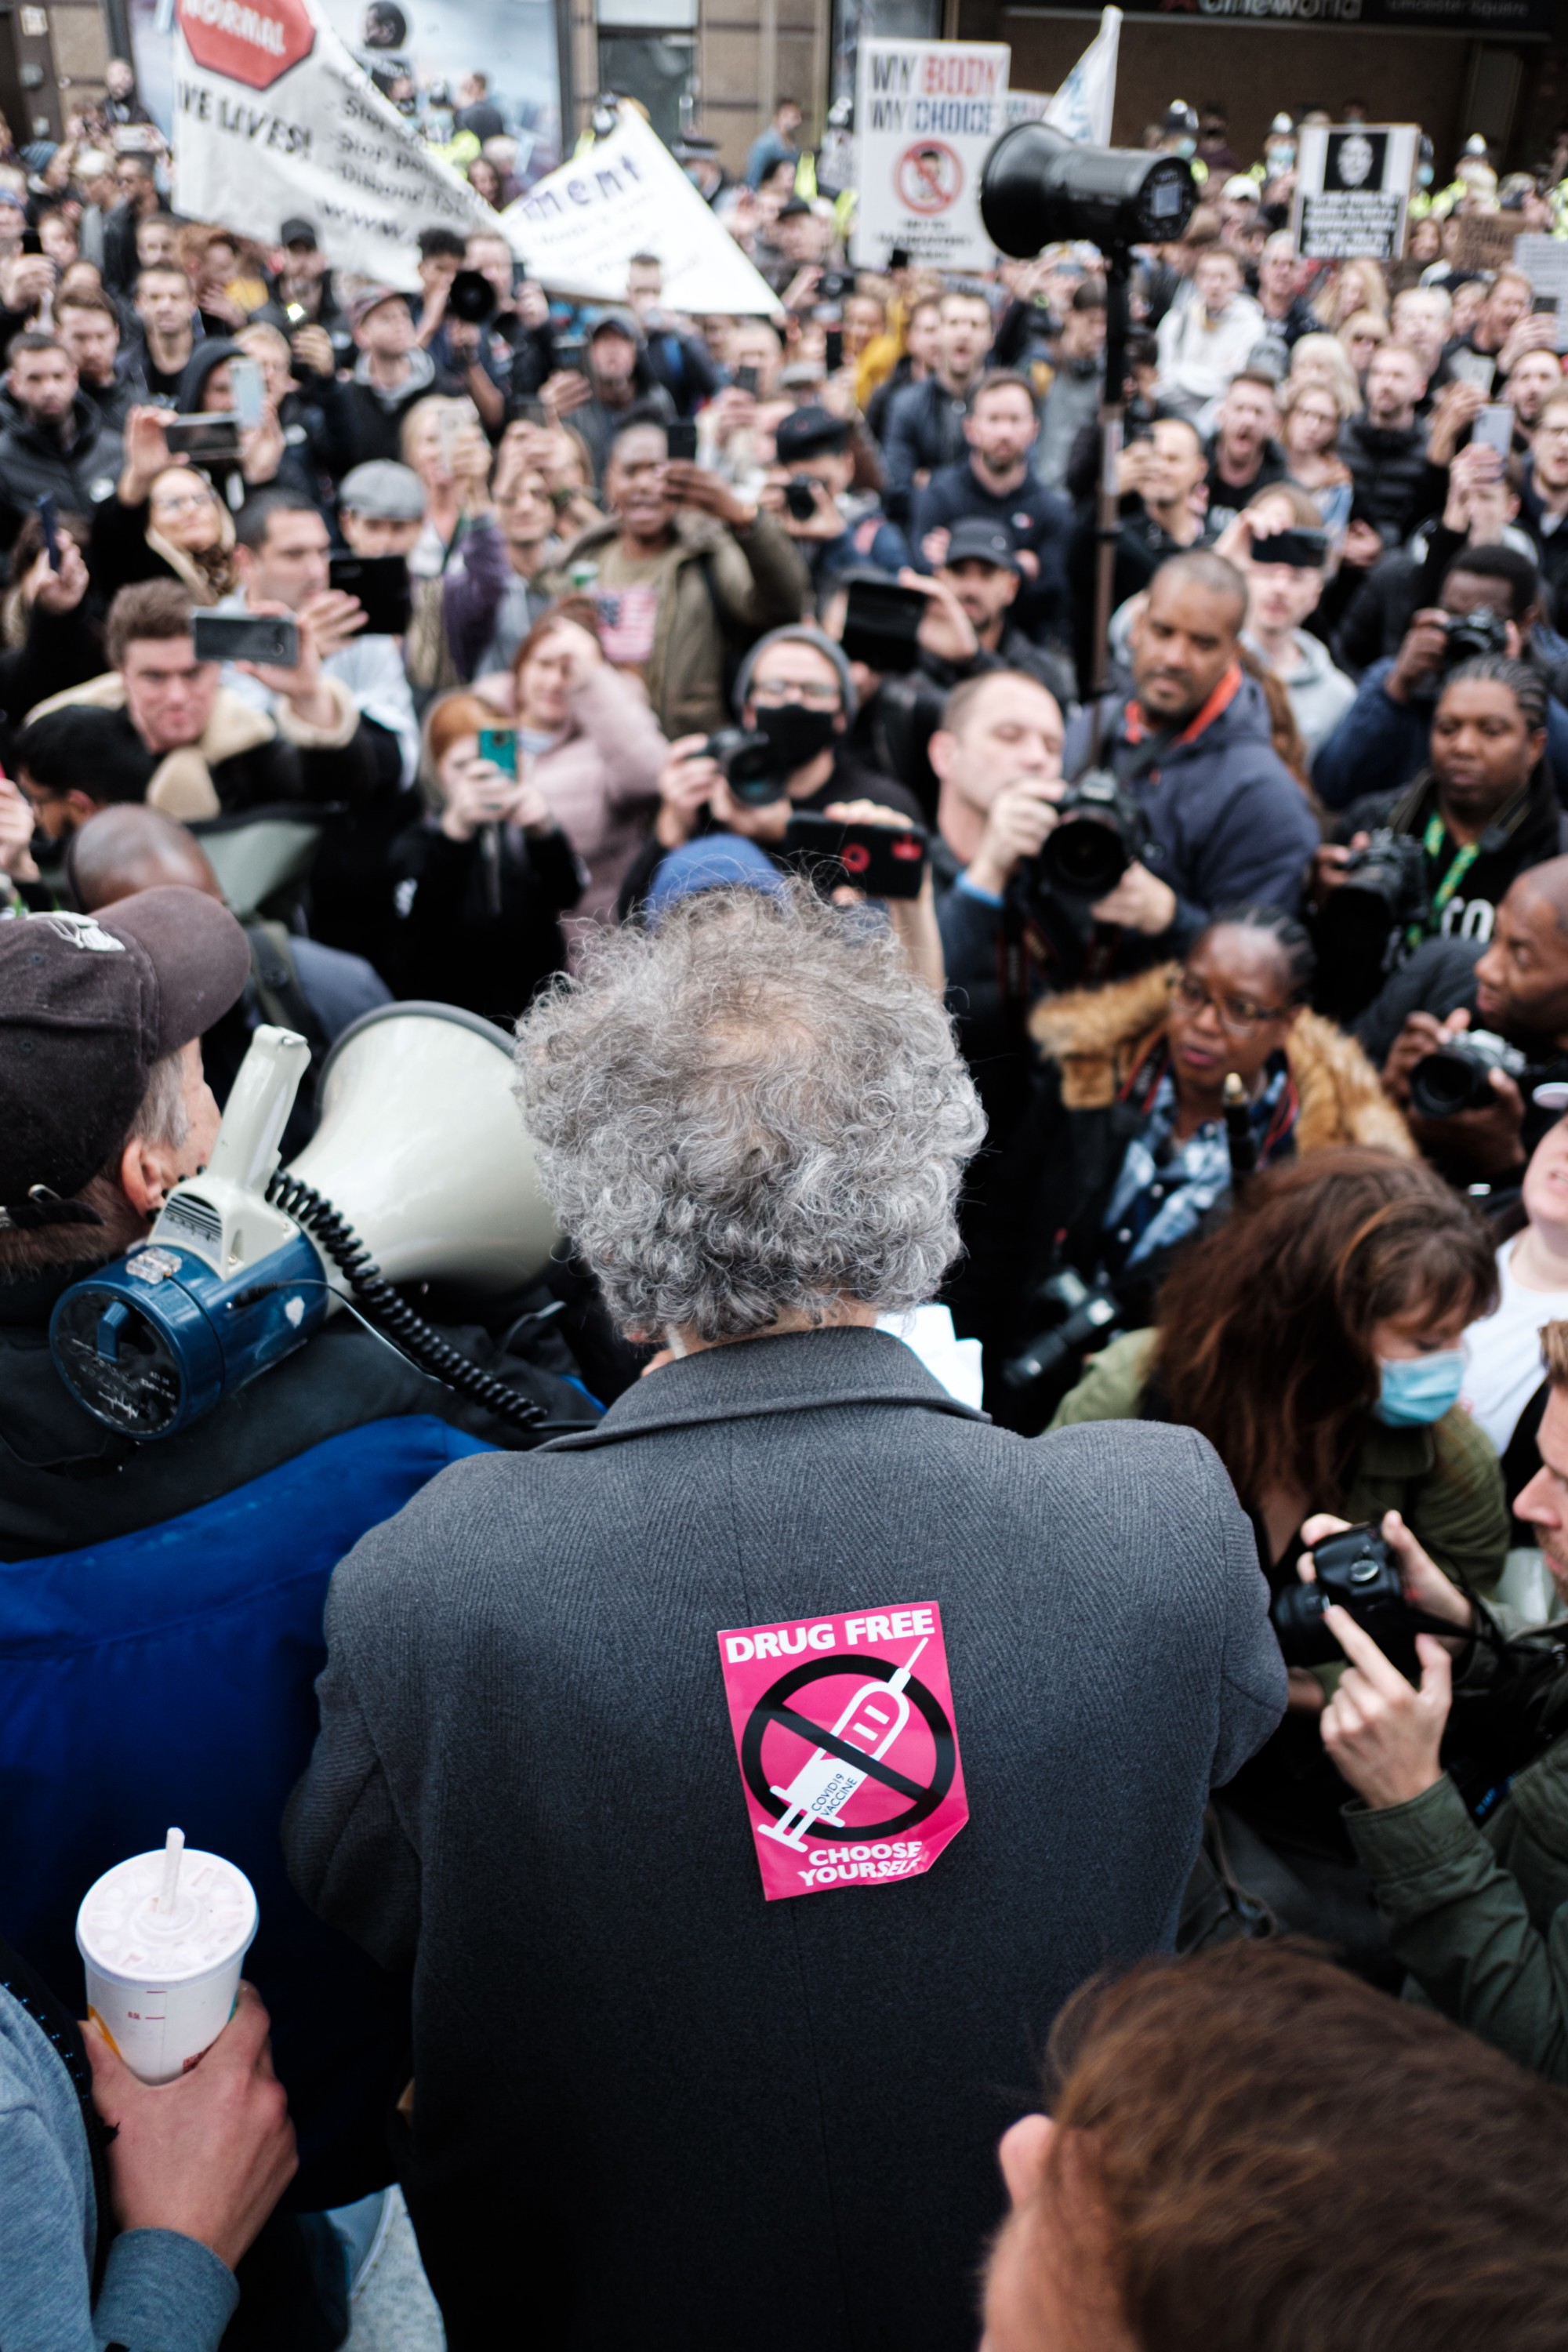 Man in front of a crowd, with his back to the camera, with an anti-vaccine sticker stuck to the back of his coat.